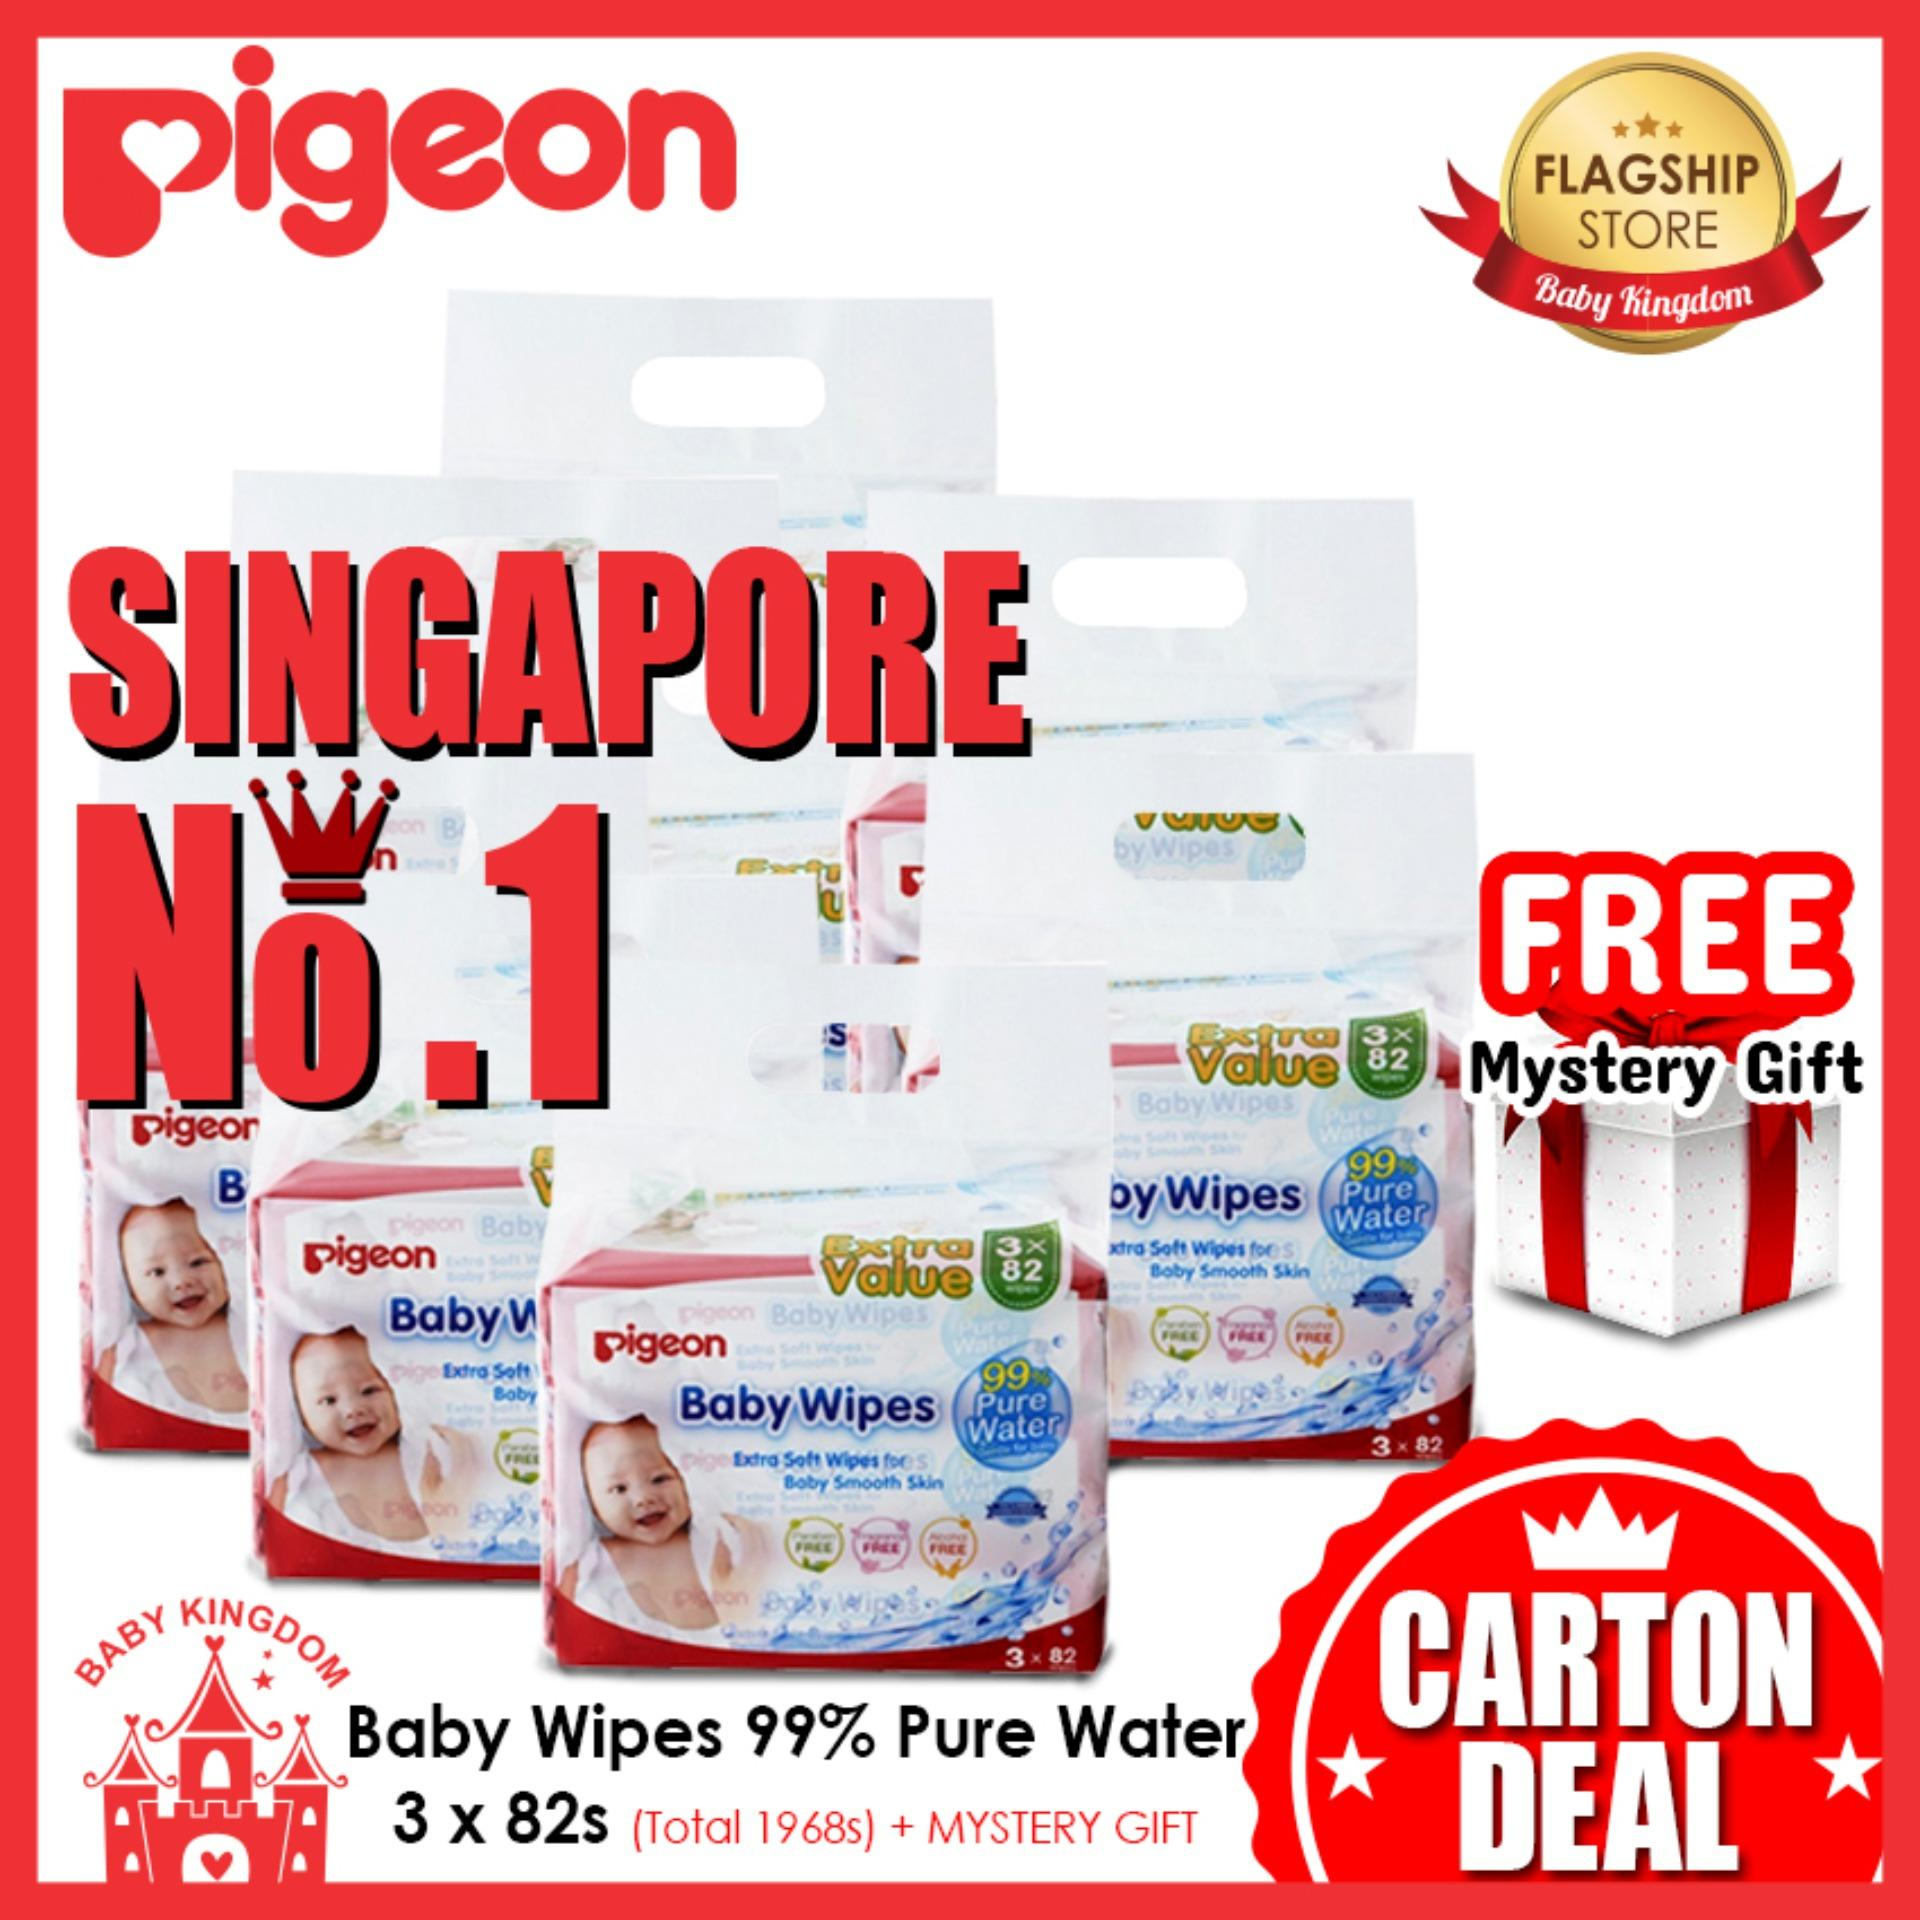 ... Pigeon Baby Wipes 99 Purewater 82 s x 3 packs CARTON DEAL 24 packs